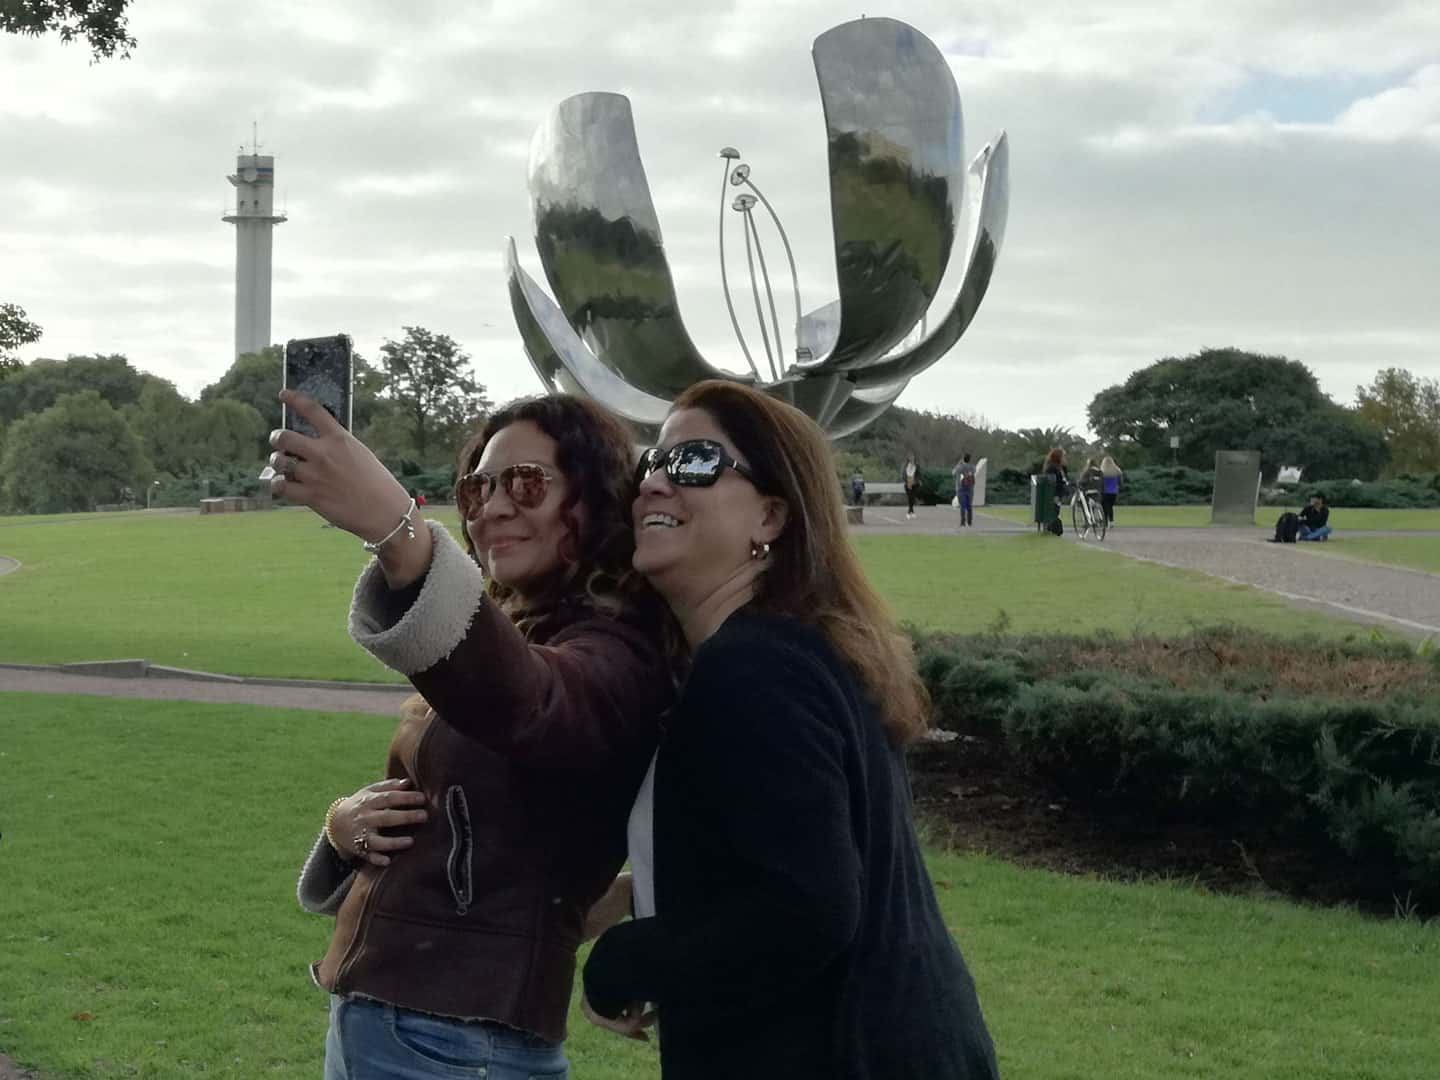 Taking a selfie at Floralis Generica Park during a Bike Tour